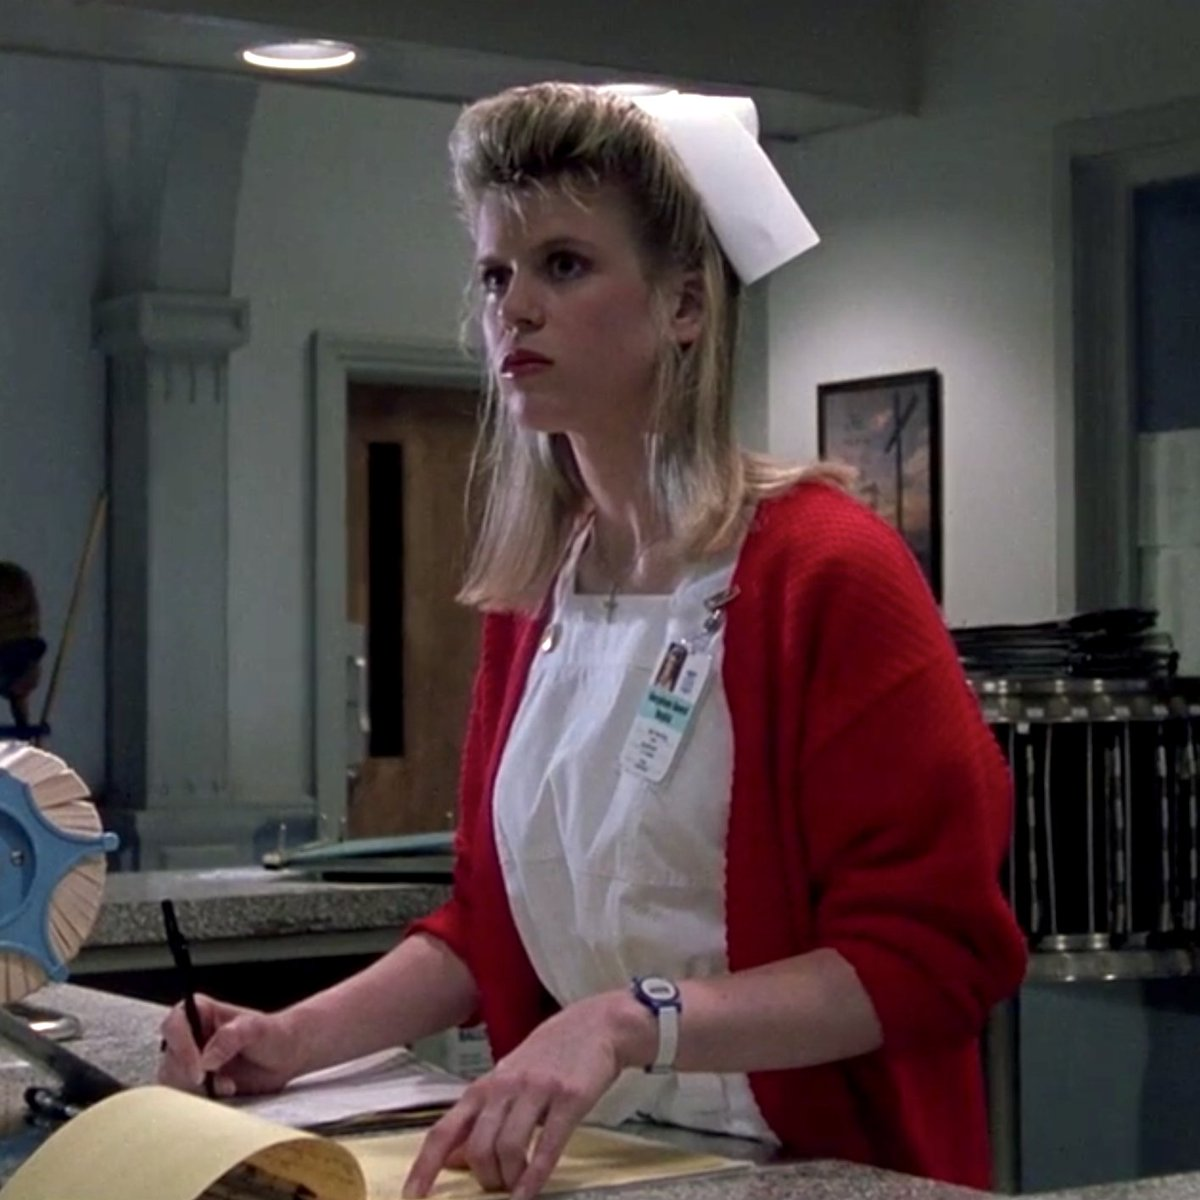 Watching THE EXORCIST III just taught me where Lisa Garland got her look. <br>http://pic.twitter.com/PqwZy7z9ty